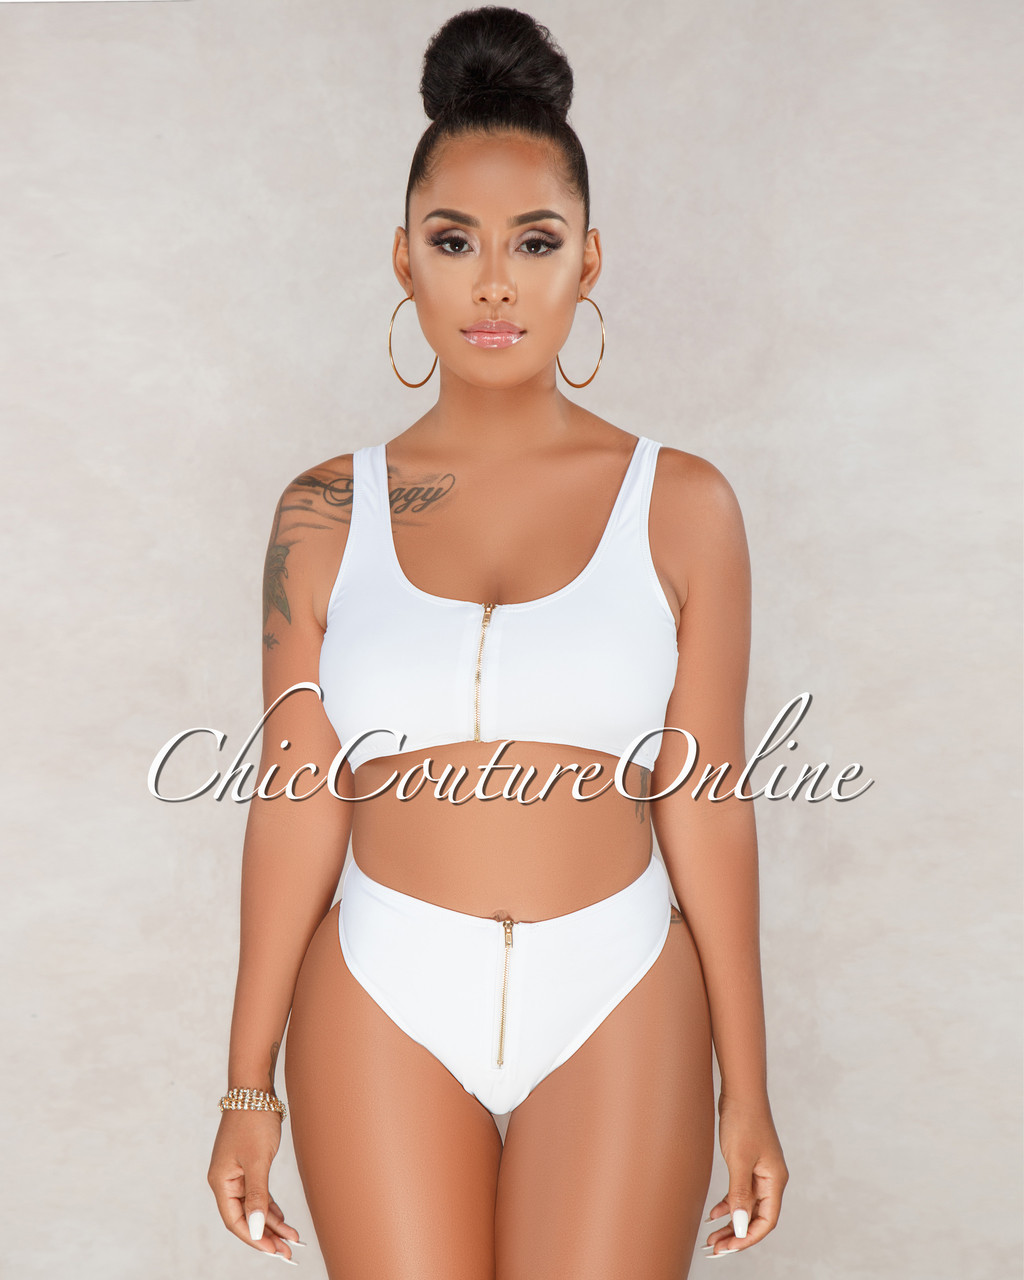 eb6f6121fbec5 Mayah White Front Zipper Two Piece Swimsuit. Price: $50.00. Image 1